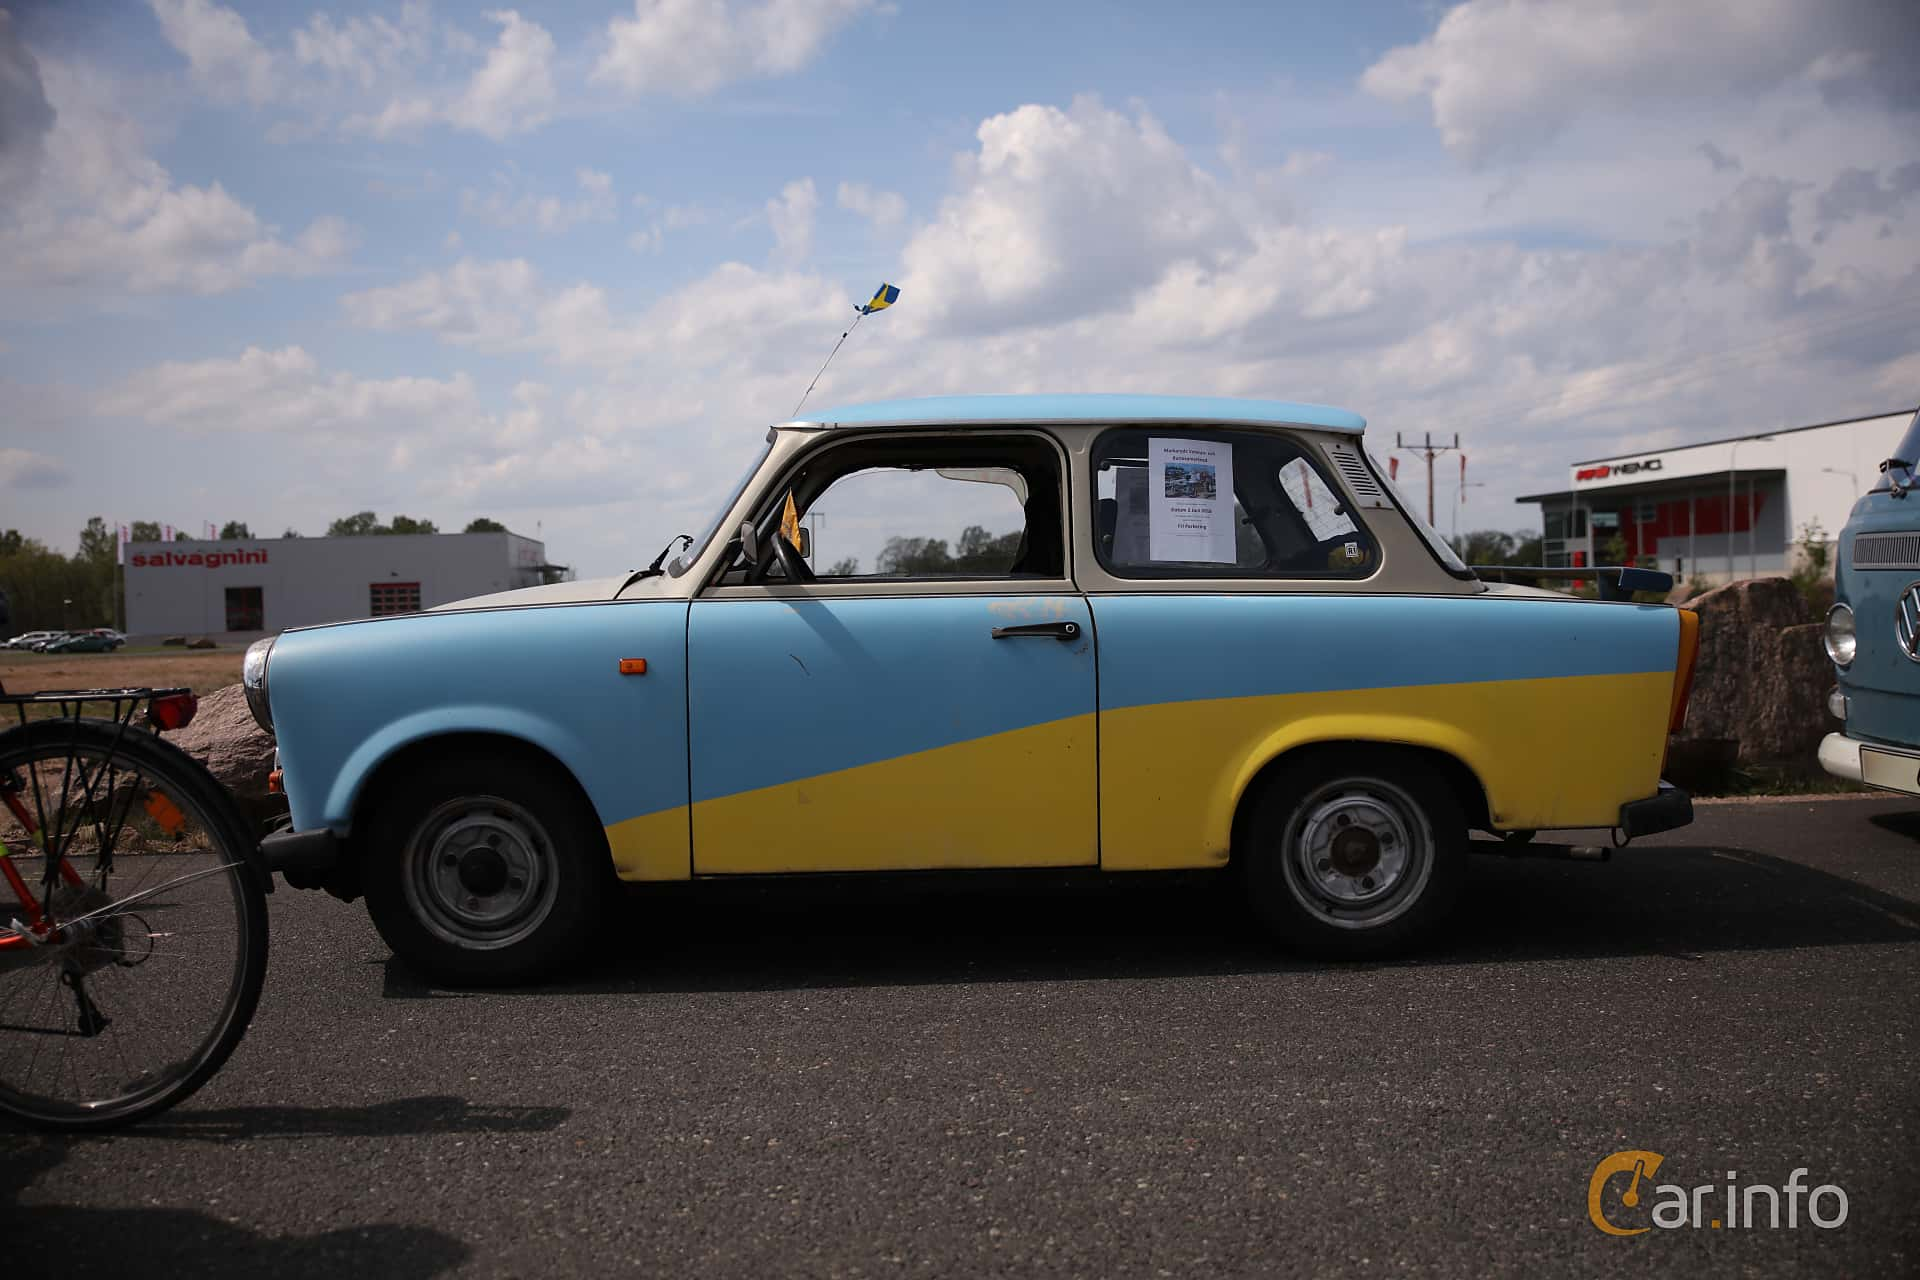 Trabant 601 Limousine 0.6 Manual, 26hp, 1987 at Riksettanrallyt 2018